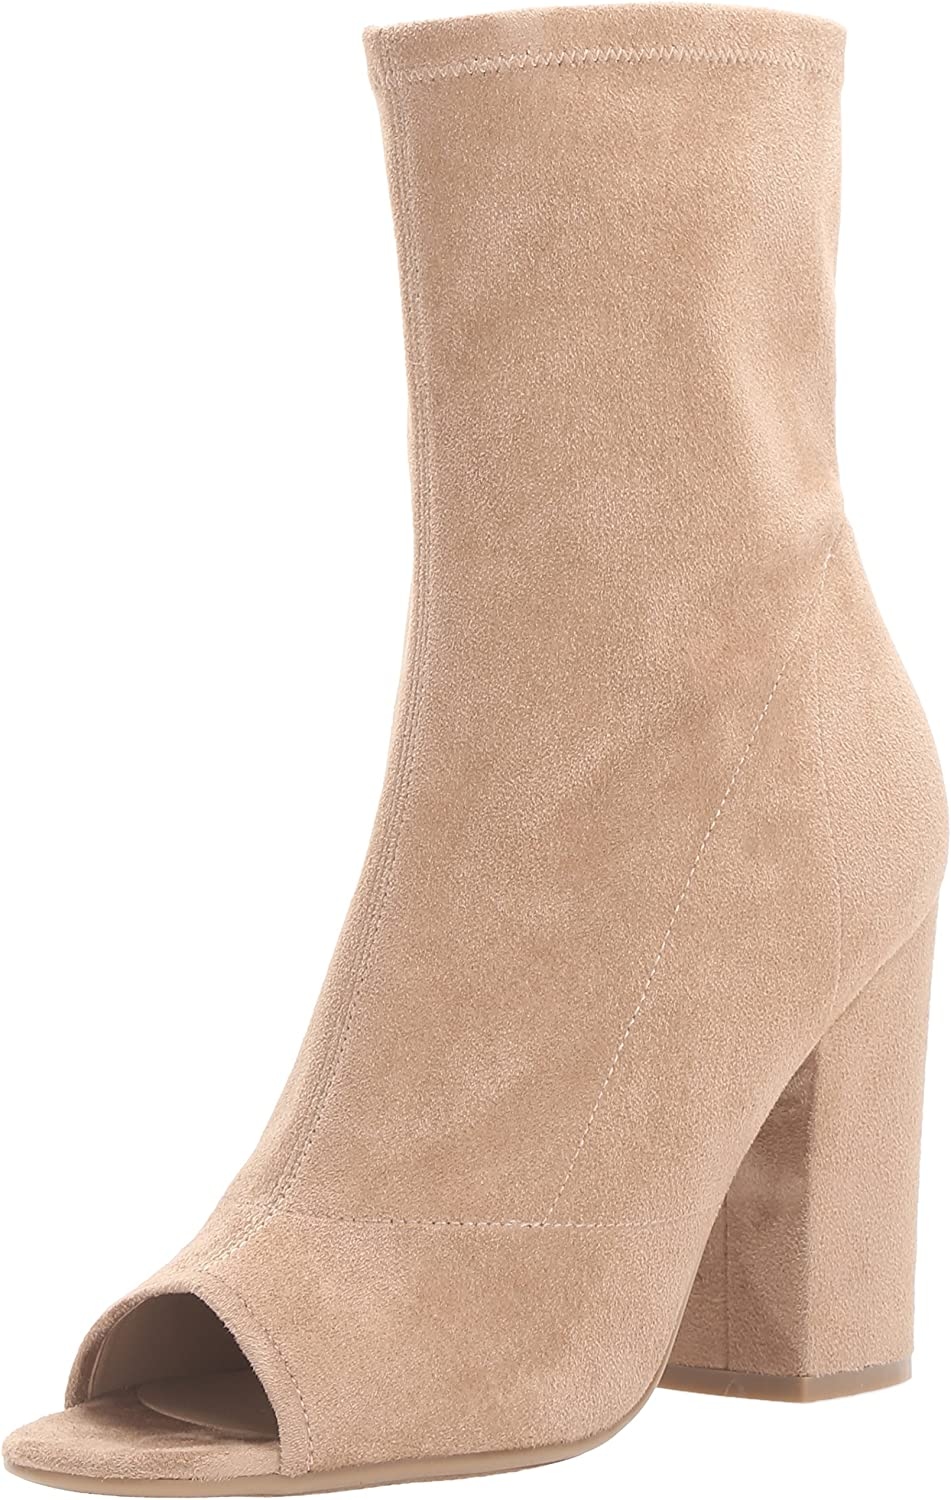 GUESS Womens Galyna2 Ankle Bootie